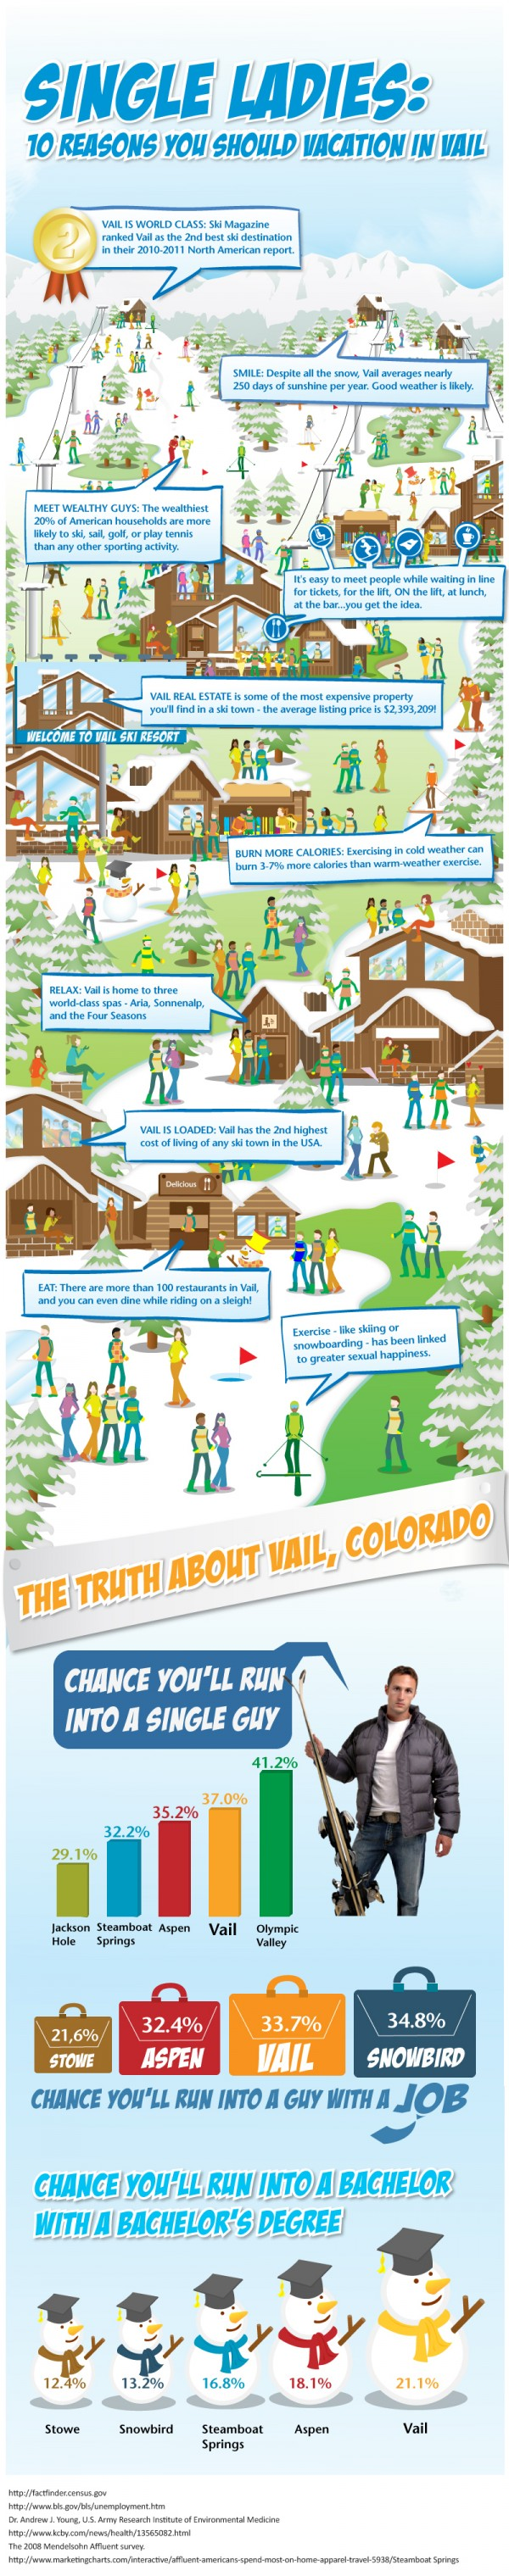 vail-facts-ski-dating